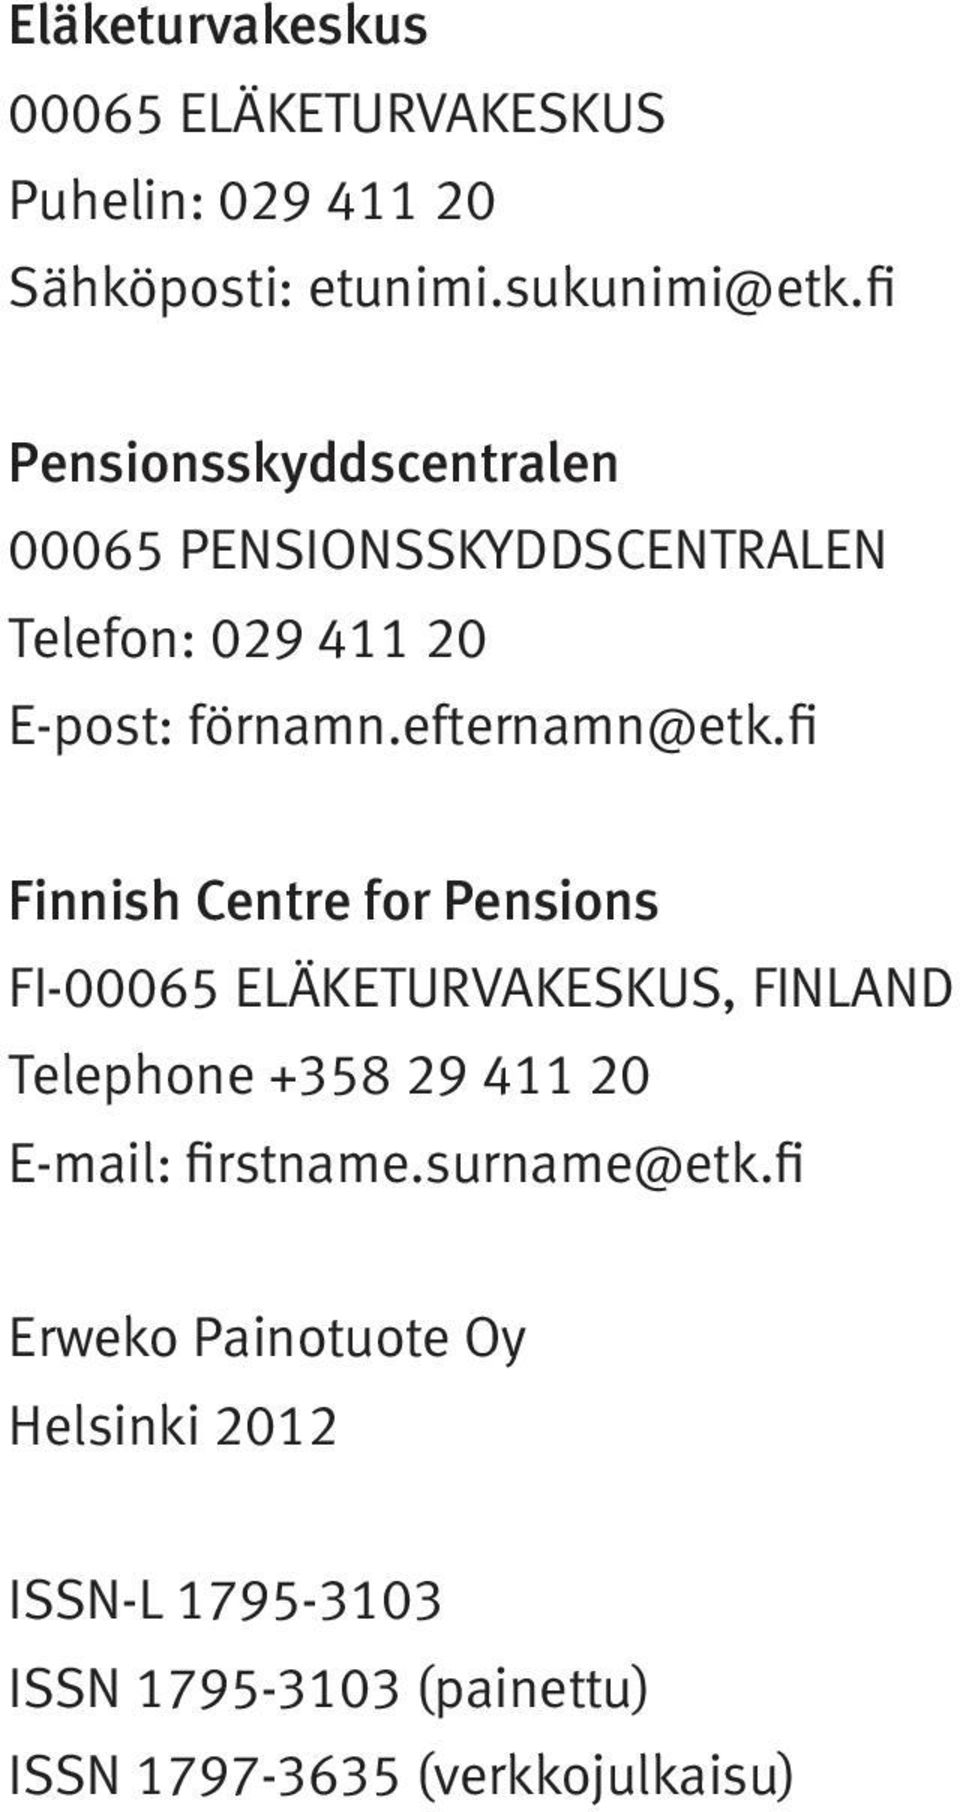 fi Finnish Centre for Pensions FI-00065 ELÄKETURVAKESKUS, FINLAND Telephone +358 29 411 20 E-mail: firstname.